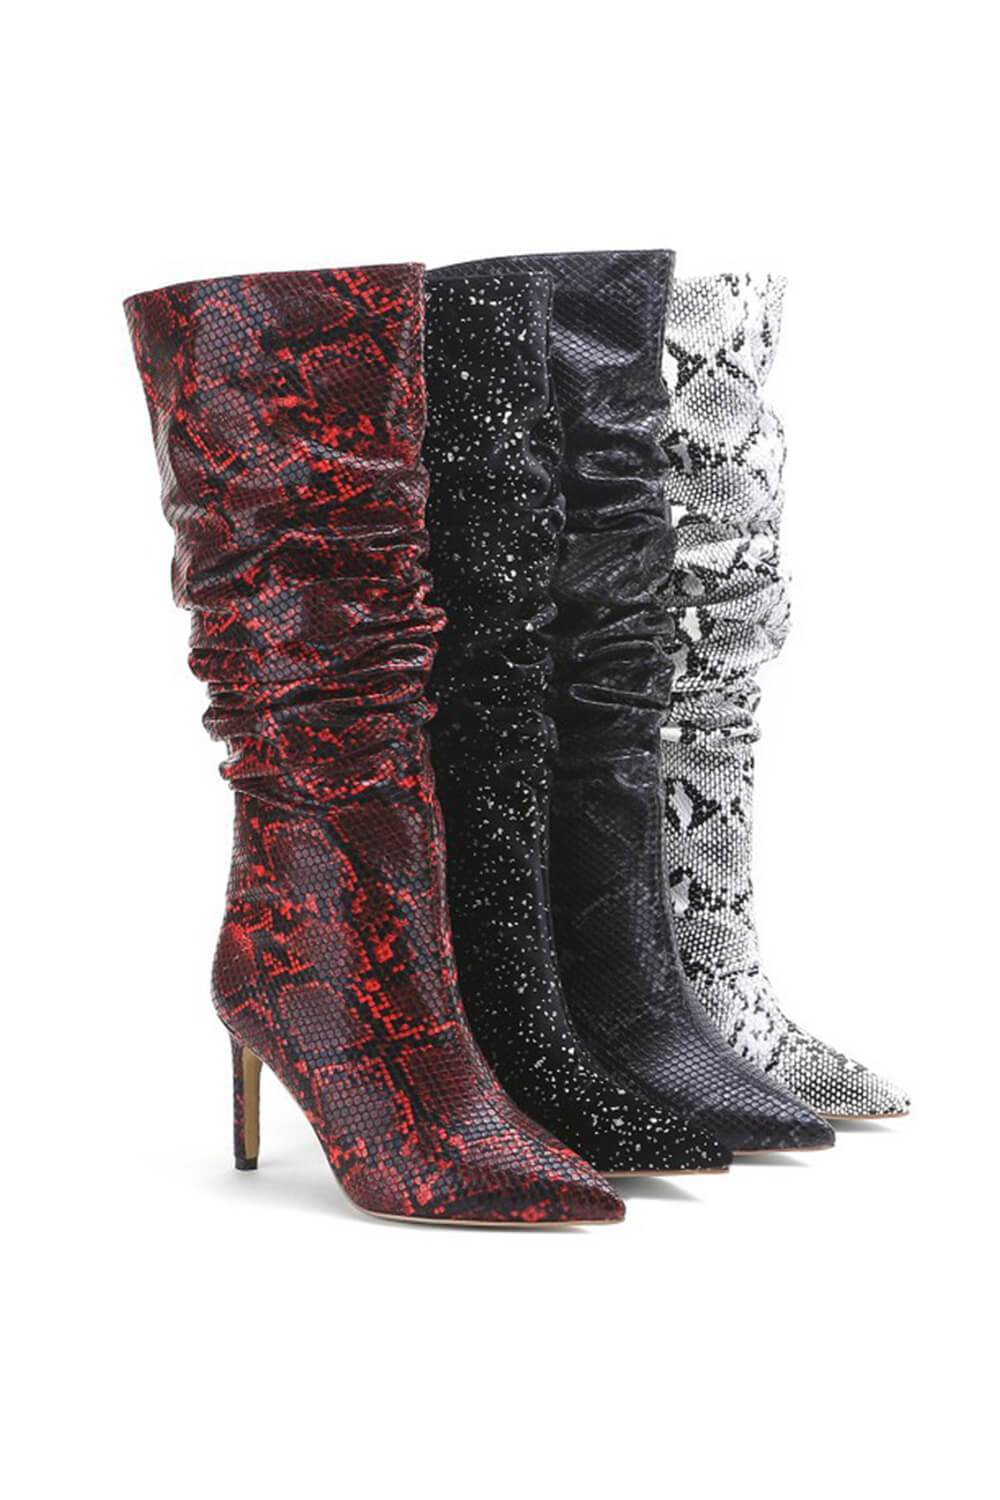 Rust Snakeskin Ruched Knee High Stiletto Boots (4308210155579)